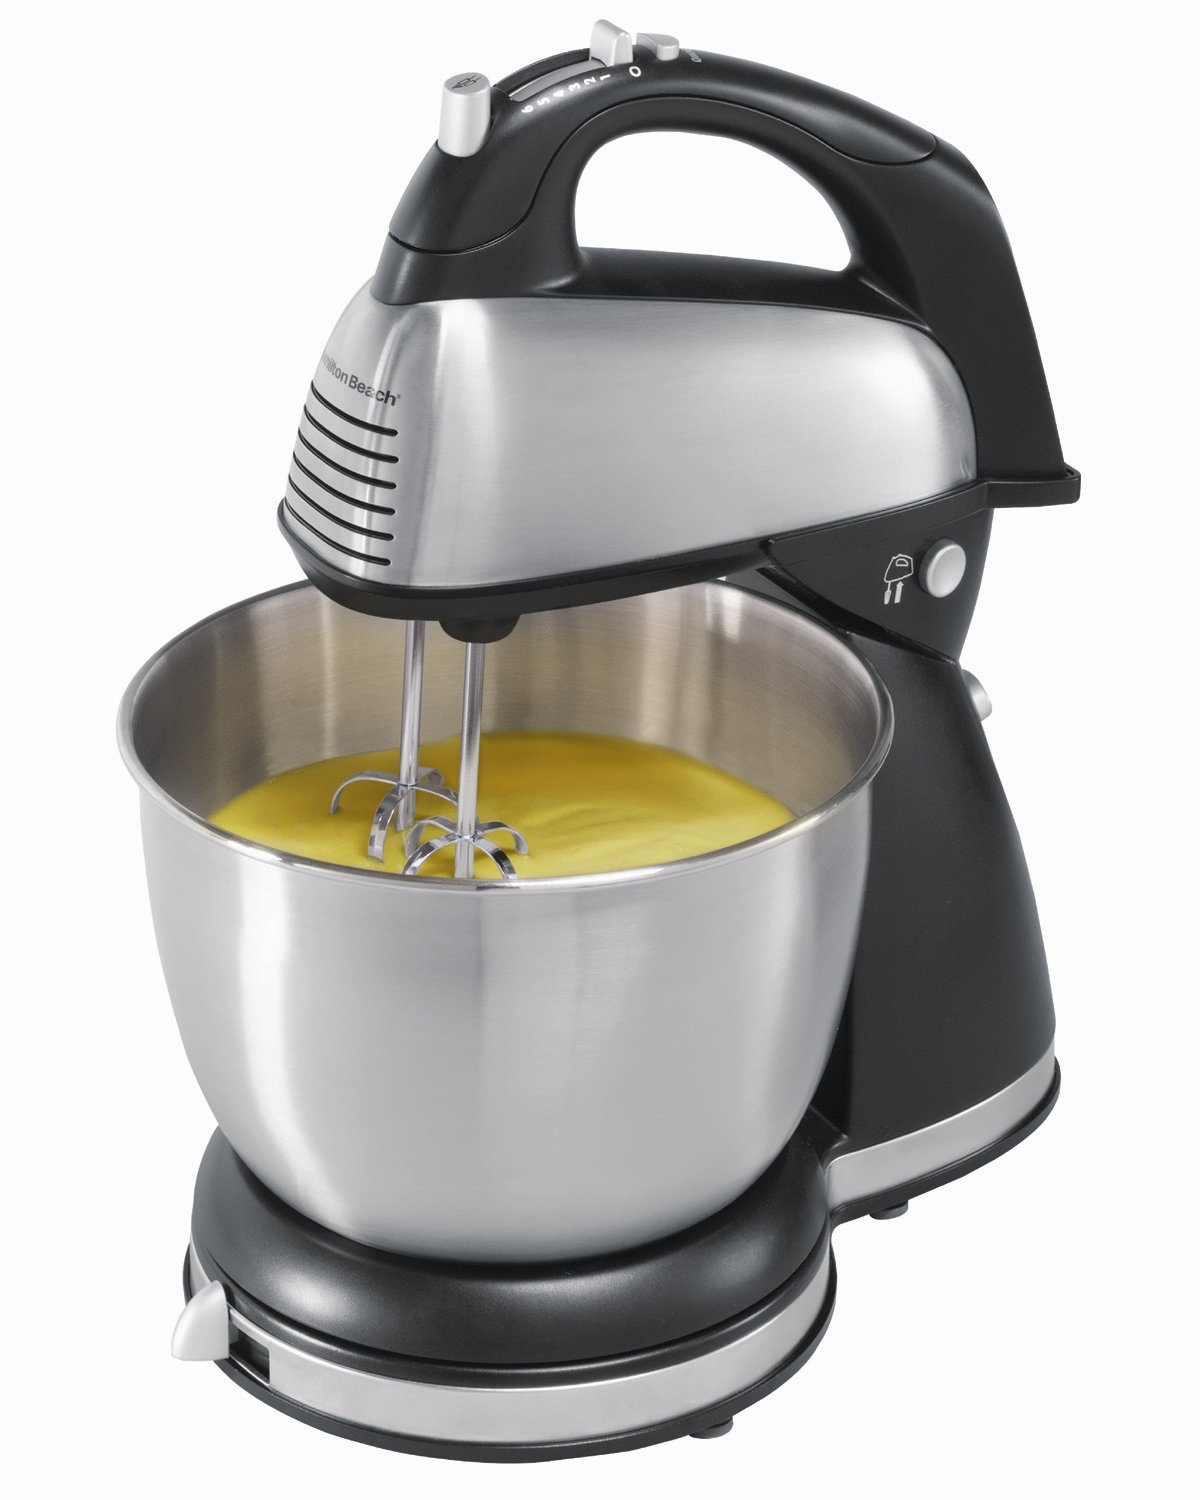 best stand mixer review